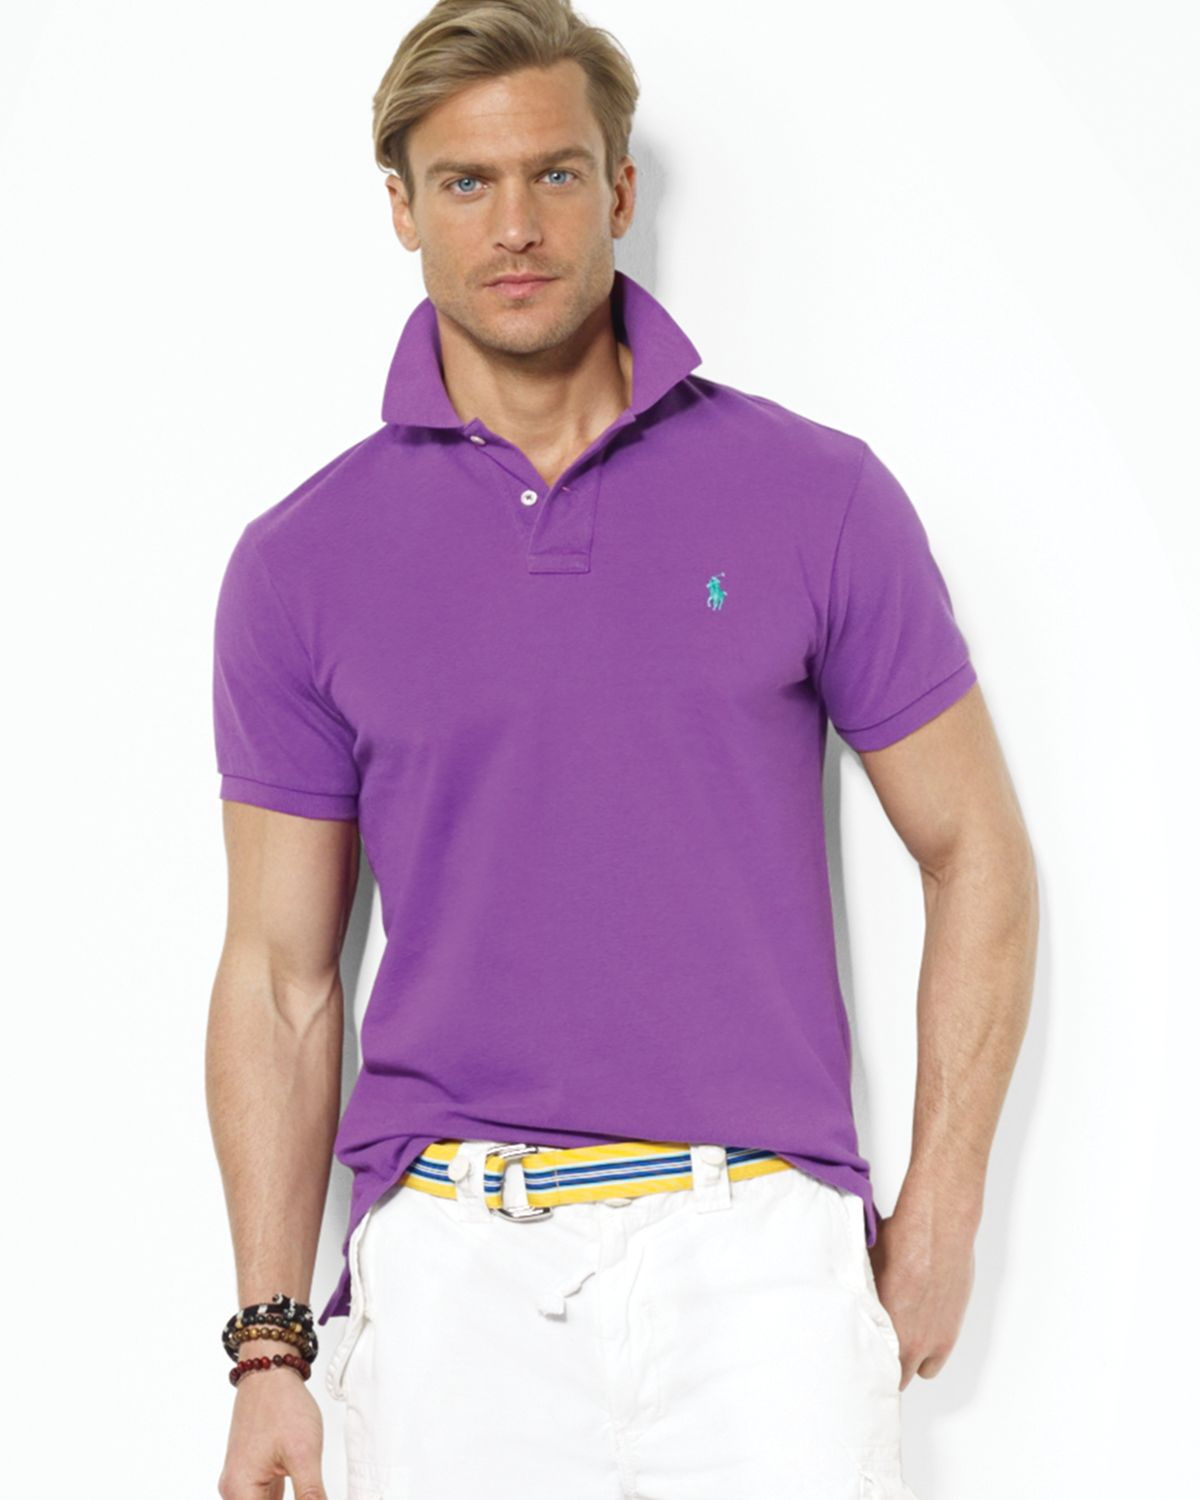 Ralph lauren polo customfit mesh polo shirt in purple for Man in polo shirt